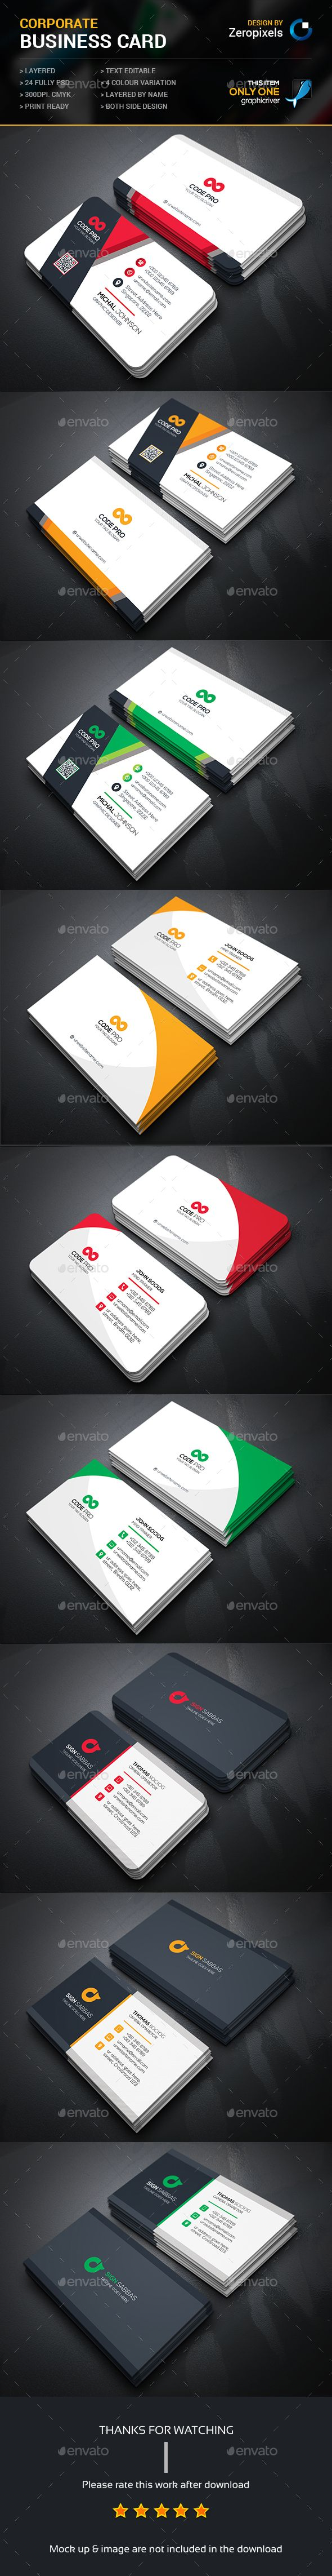 Business Card Template PSD Bundle. Download here: http://graphicriver.net/item/business-card-bundle/16665922?ref=ksioks